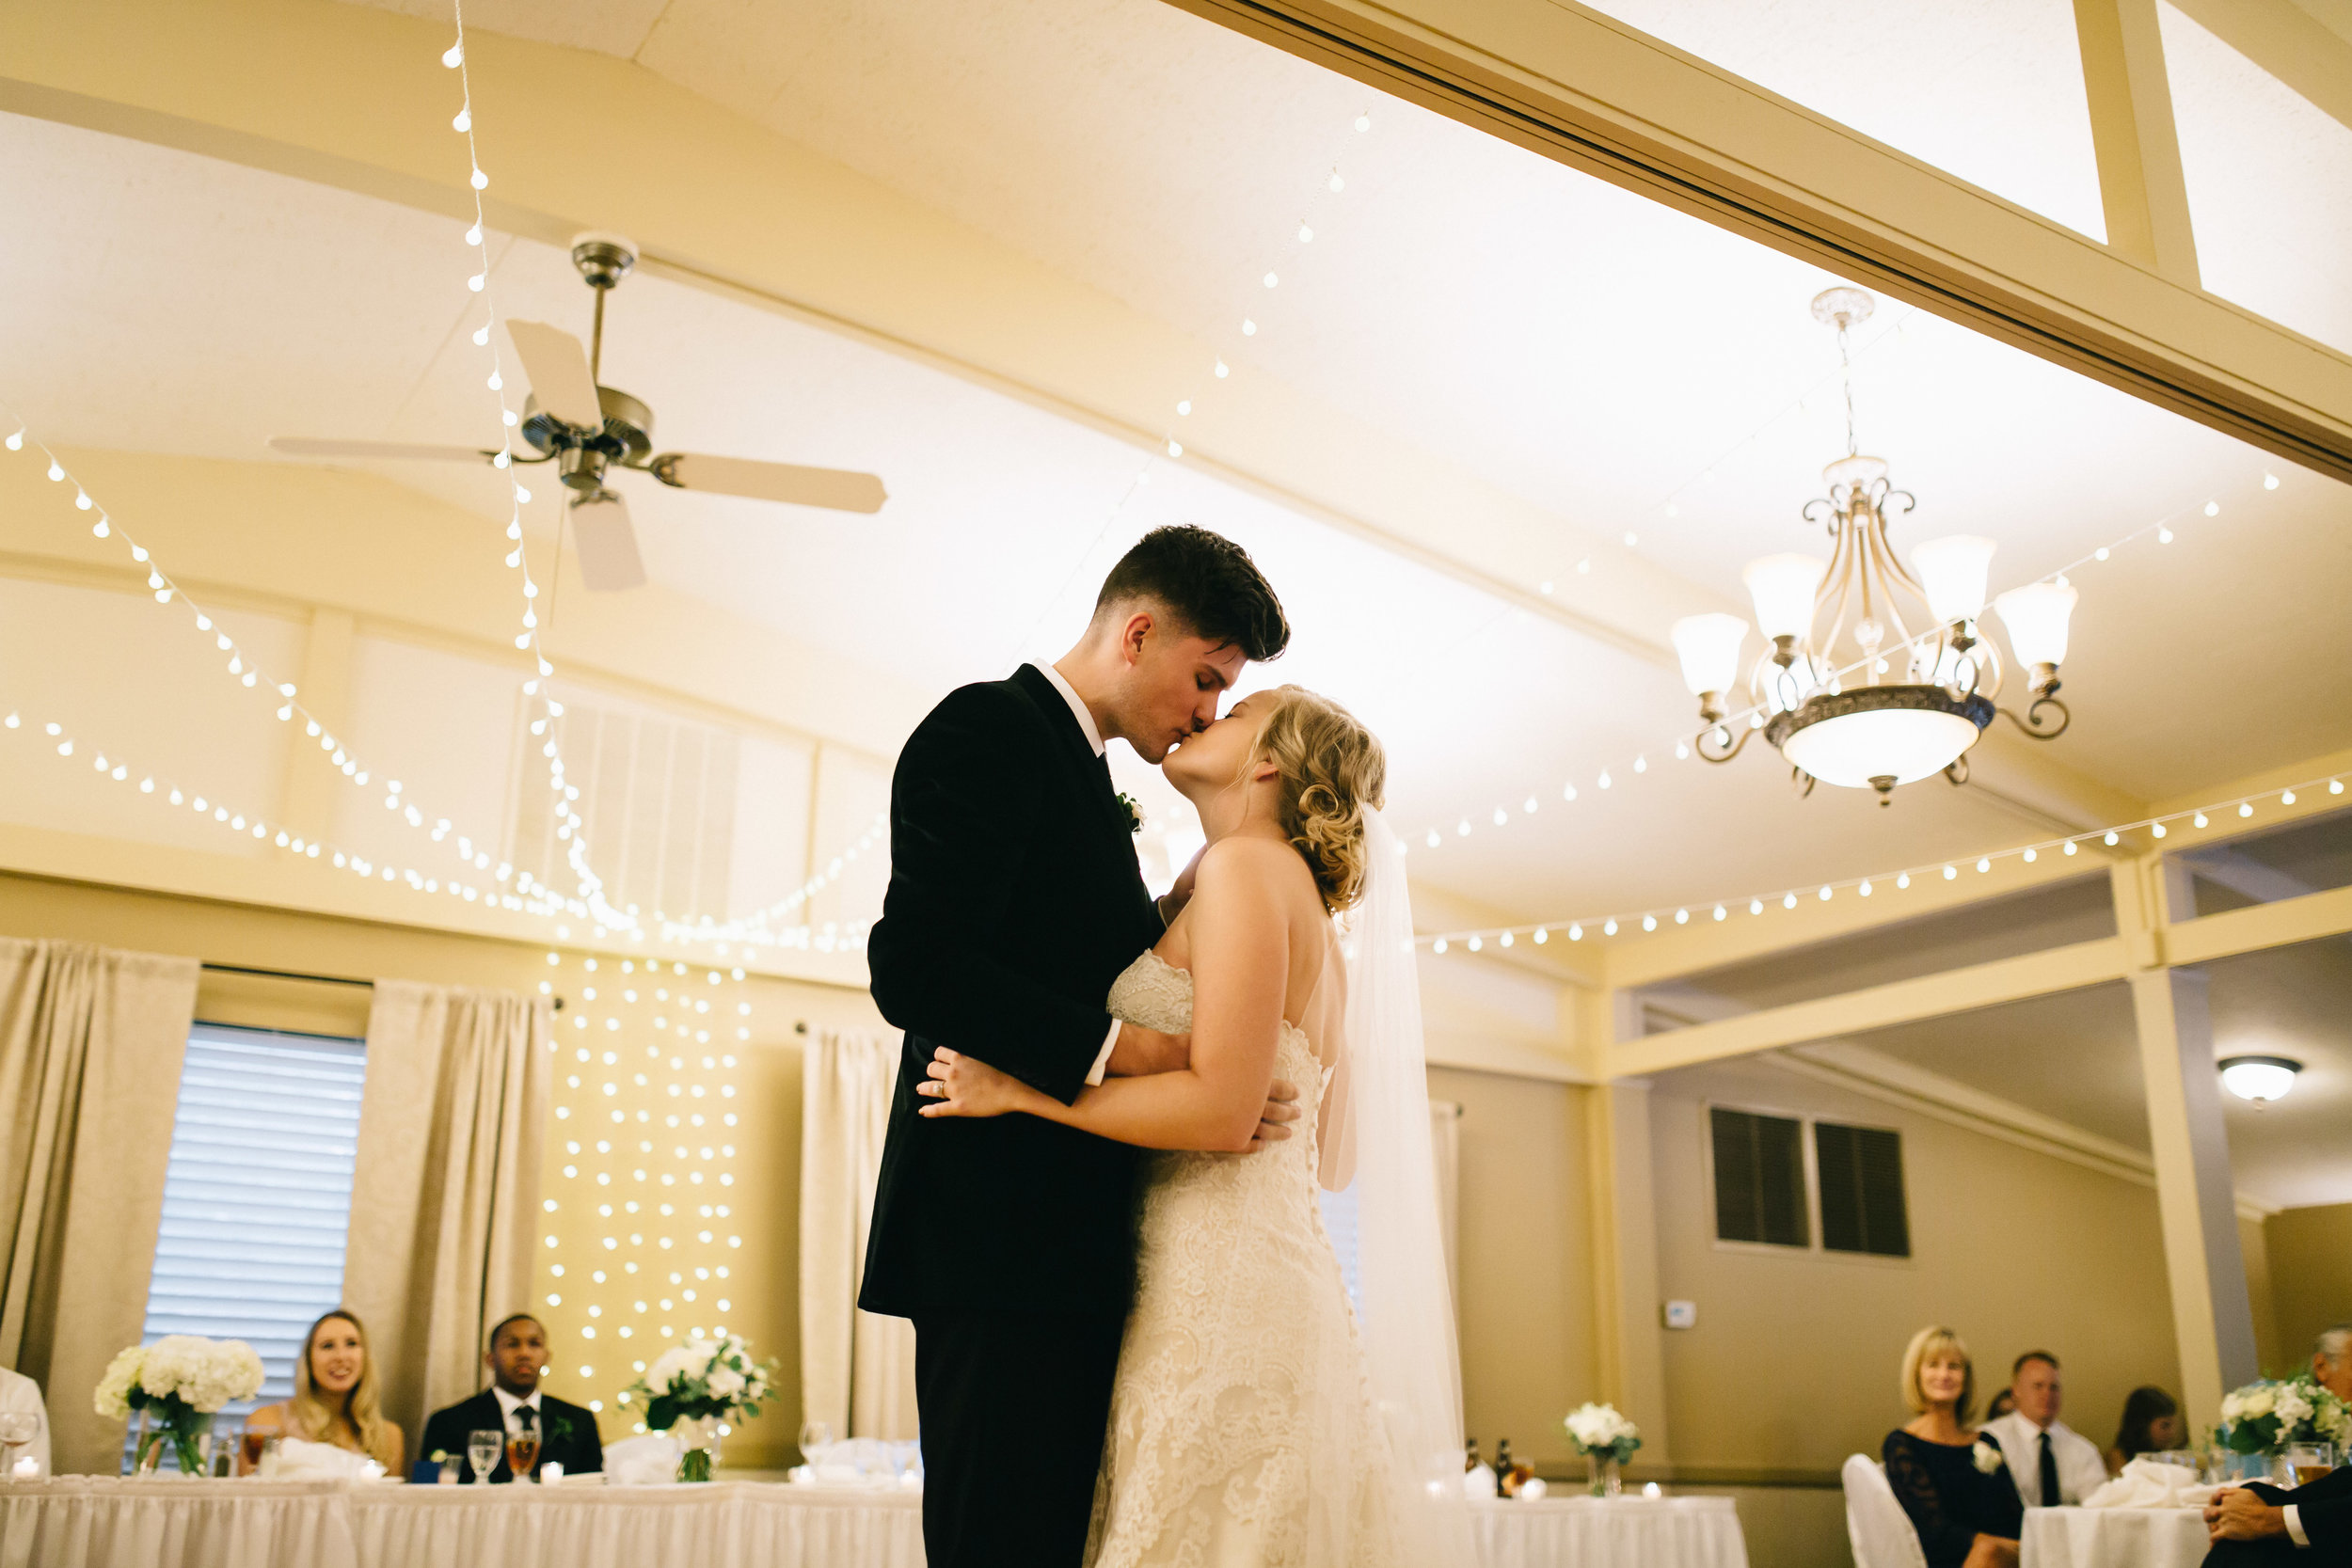 Megan&JaredMarried-824.jpg